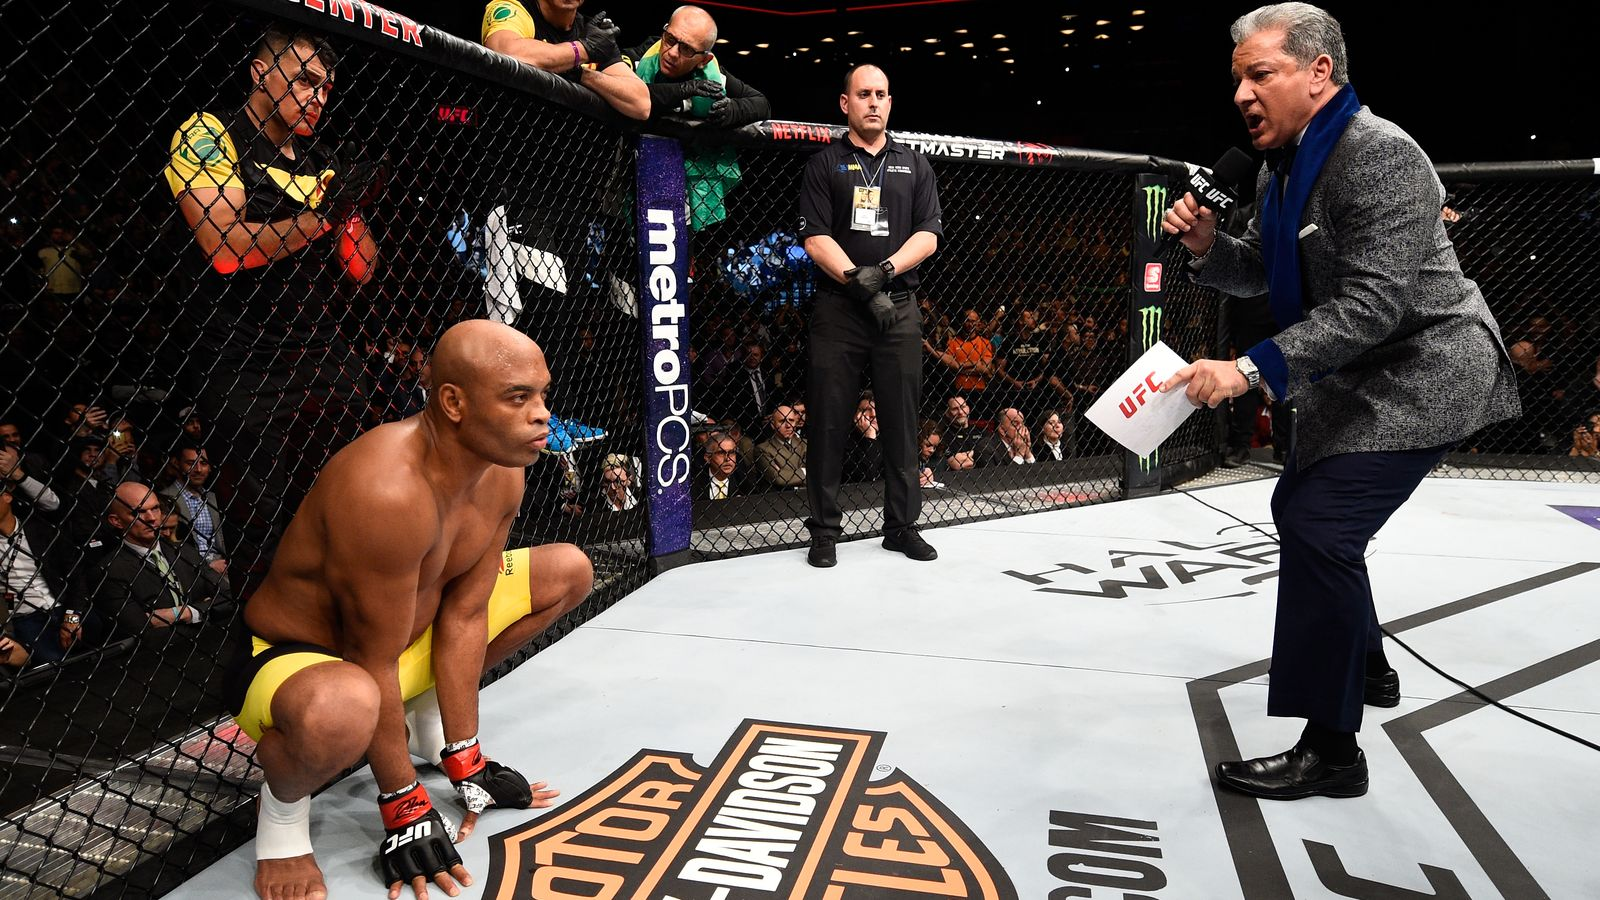 BROOKLYN, NEW YORK - FEBRUARY 11:  Anderson Silva of Brazil enters the Octagon before facing Derek Brunson in their middleweight bout during the UFC 208 event inside Barclays Center on February 11, 2017 in Brooklyn, New York. (Photo by Jeff Bottari/Zuffa LLC/Zuffa LLC via Getty Images)